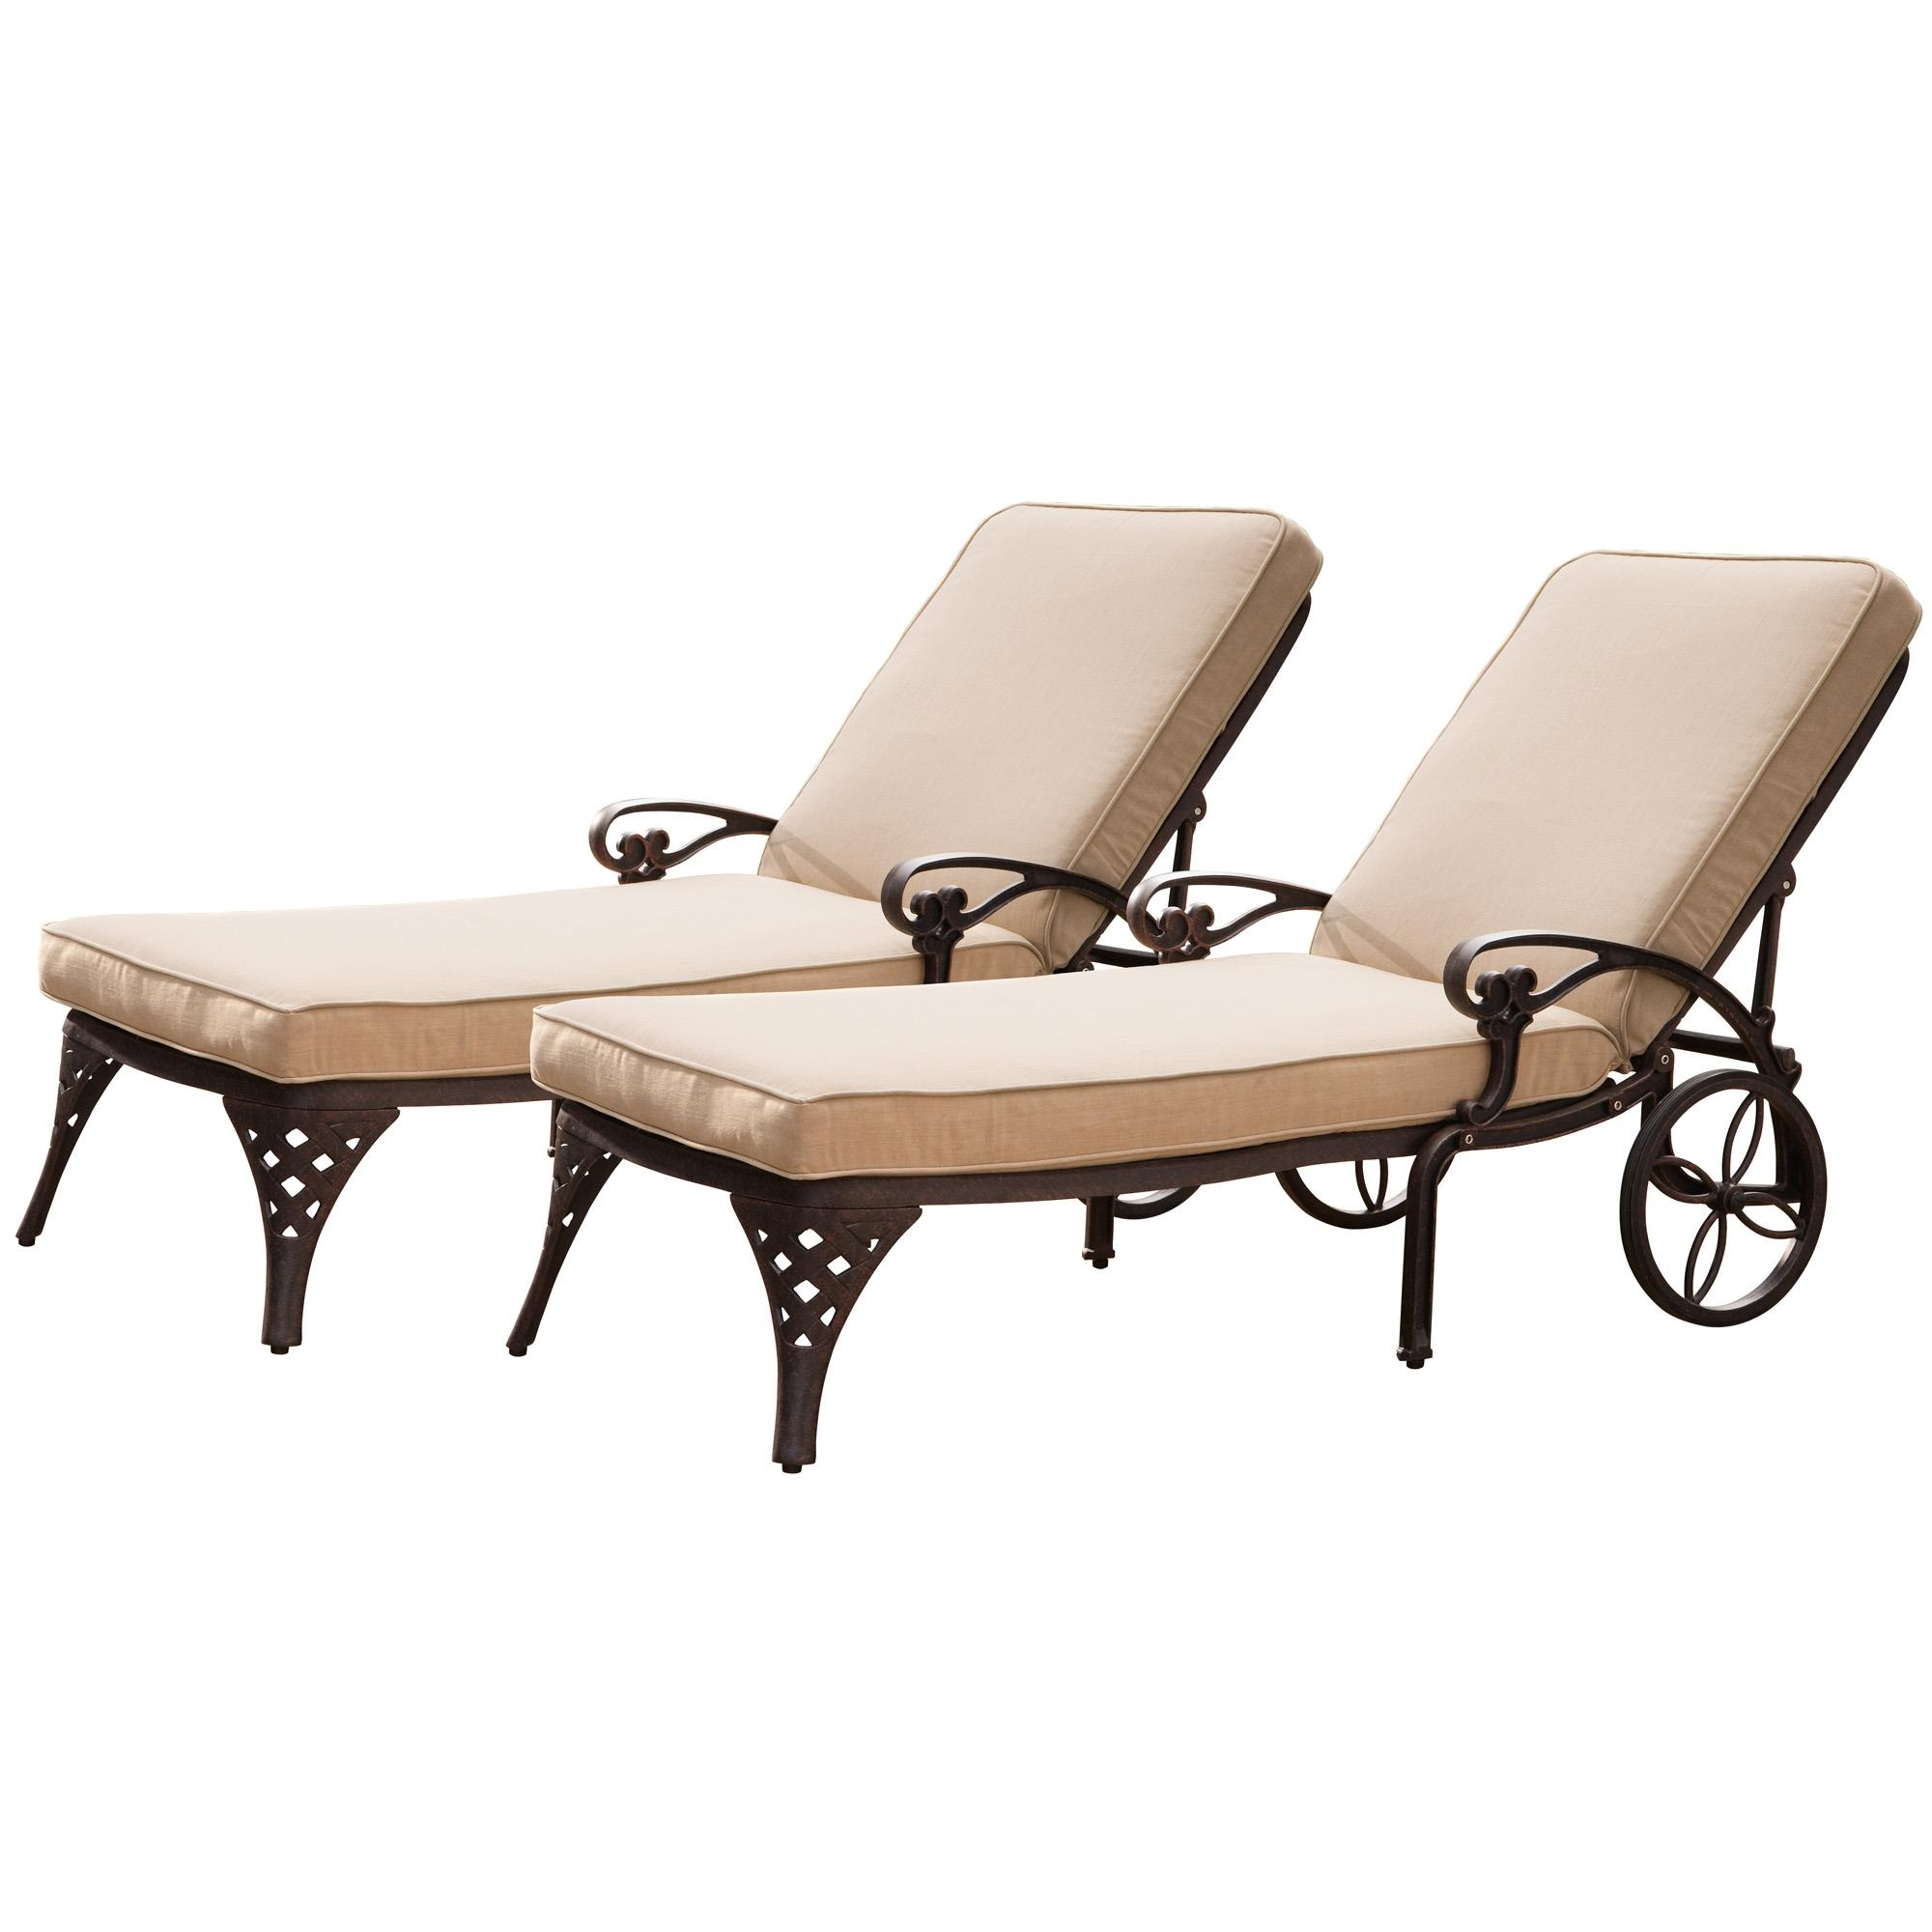 Most Up To Date Wrought Iron Chaise Lounge Chairs For Wrought Iron Chairs Outdoor Tags : Wrought Iron Lounge Chairs (View 8 of 15)